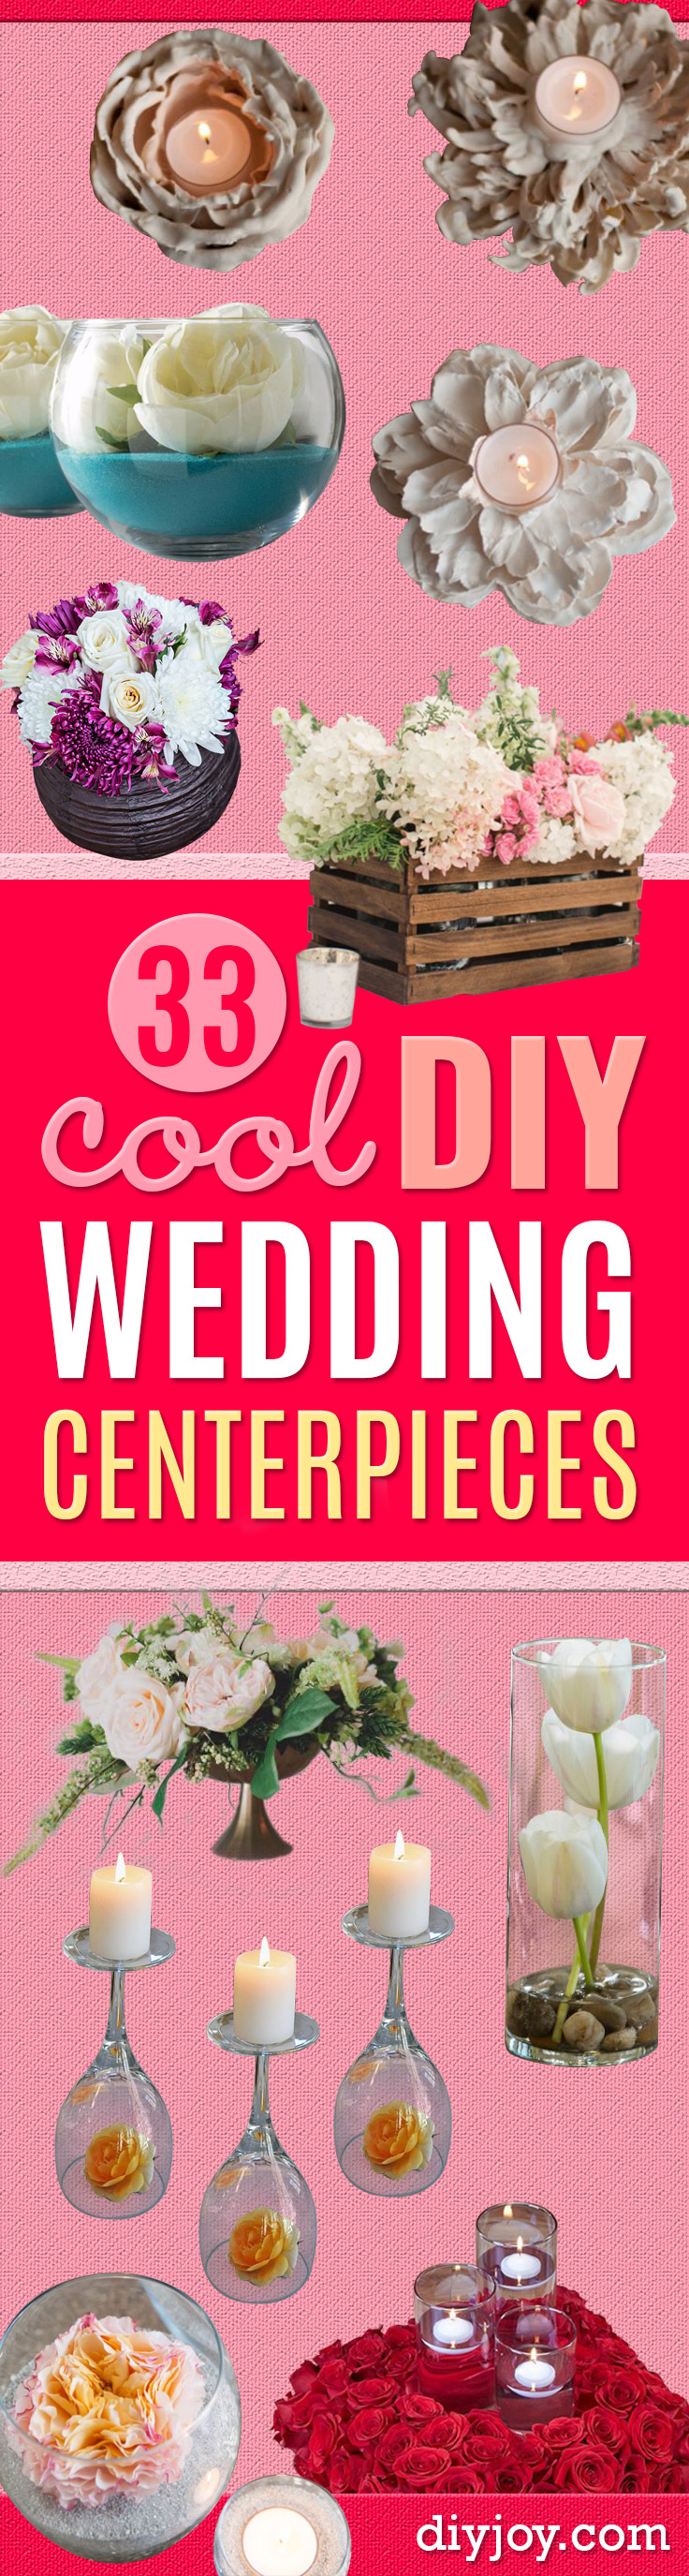 DIY Wedding Centerpieces - Do It Yourself Ideas for Brides and Best Centerpiece Ideas for Weddings - Step by Step Tutorials for Making Mason Jars, Rustic Crafts, Flowers, Modern Decor, Vintage and Cheap Ideas for Couples on A Budget Outdoor and Indoor Weddings